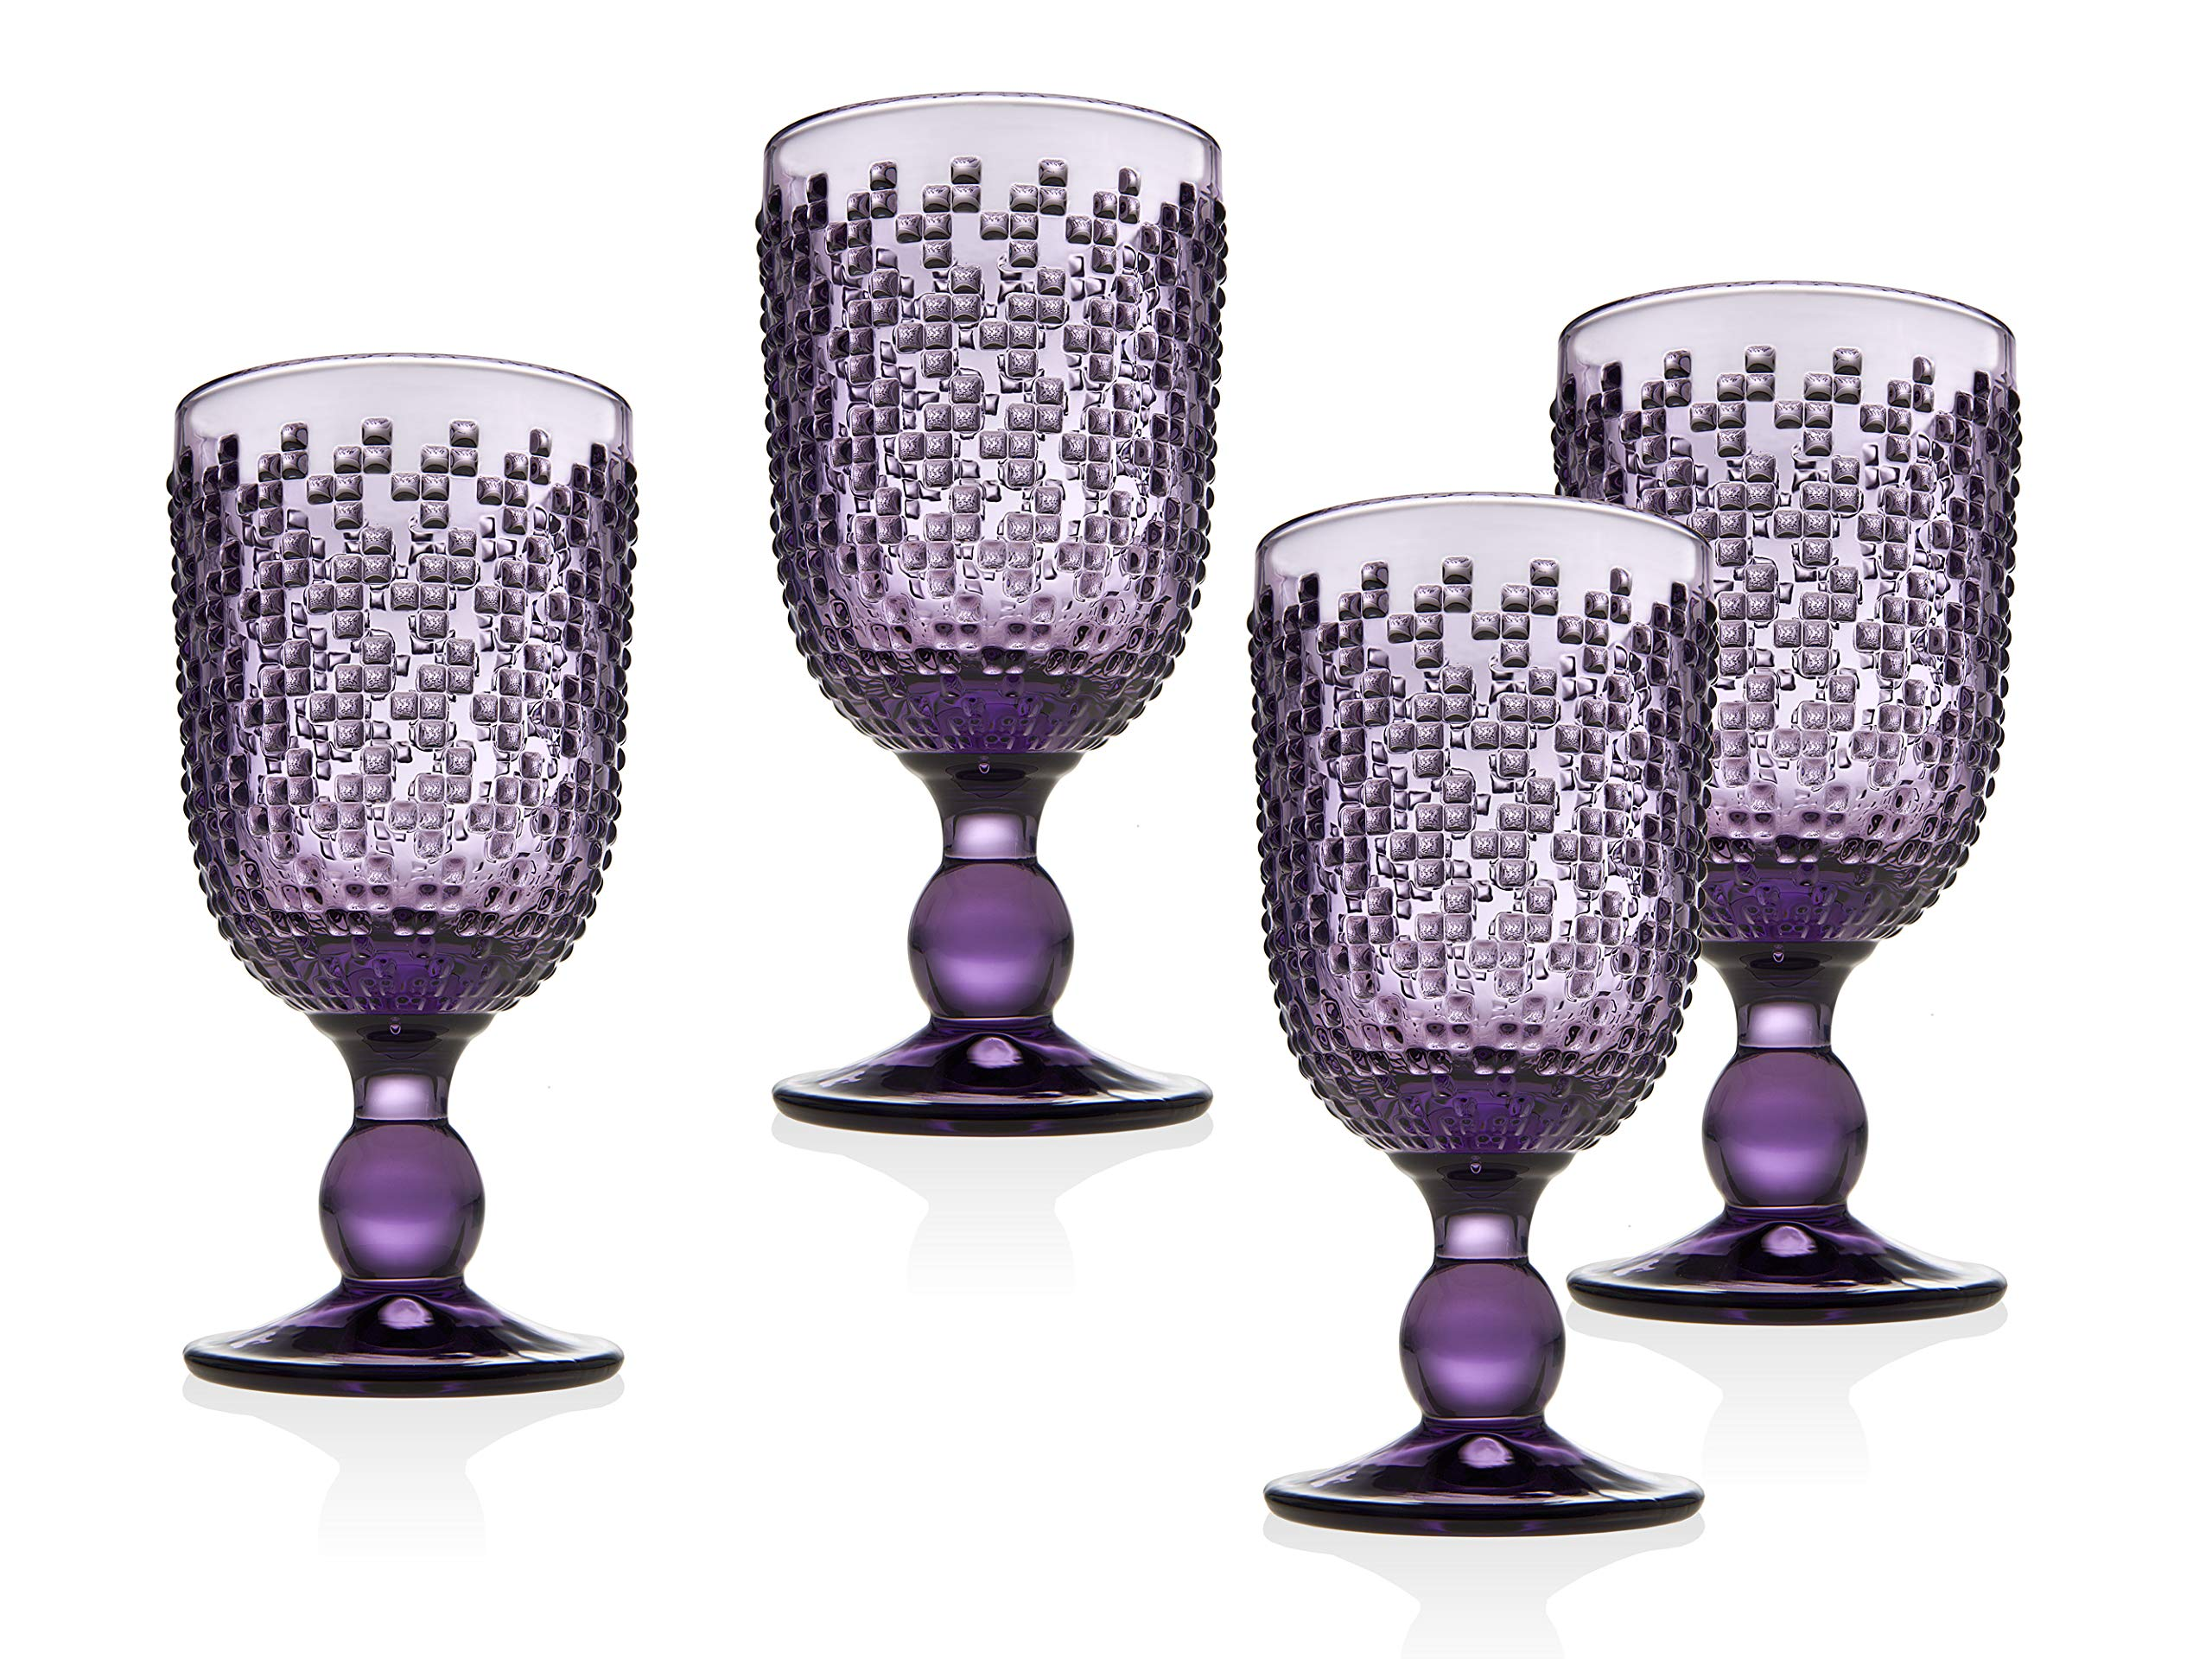 Wine Goblet Beverage Glass Cup Alba by Godinger - Amethyst - Set of 4